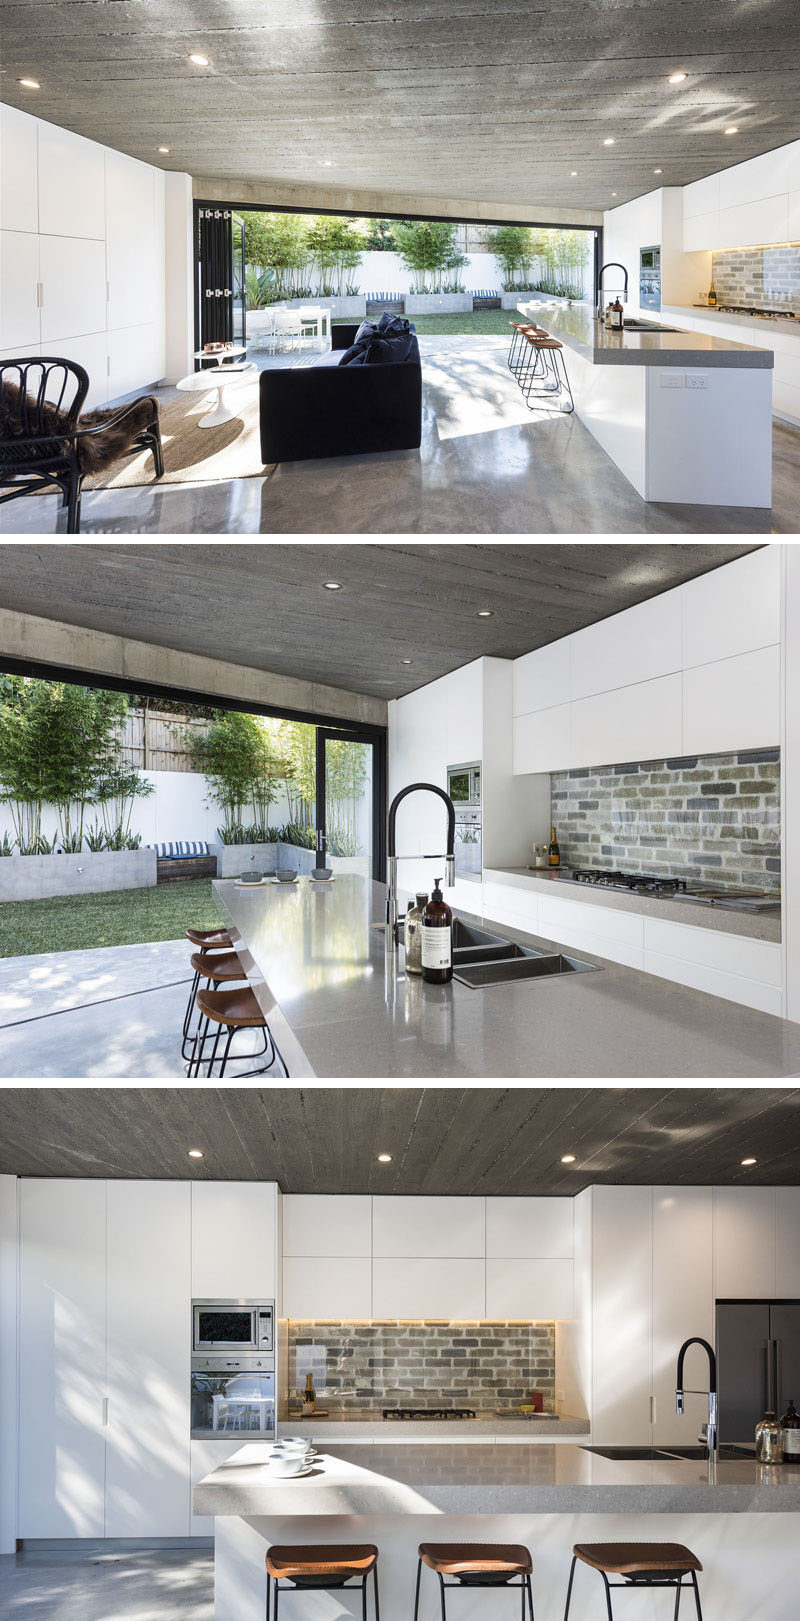 The interior of this modern house is bright and open, with the living room and kitchen sharing the same space. Minimalist white cabinets are featured on both walls, and in the kitchen a brick backsplash covered by glass has been used to create a unique accent. #ModernKitchen #WhiteCabinets #BrickBacksplash #ModernLivingRoom #OpenPlanInterior